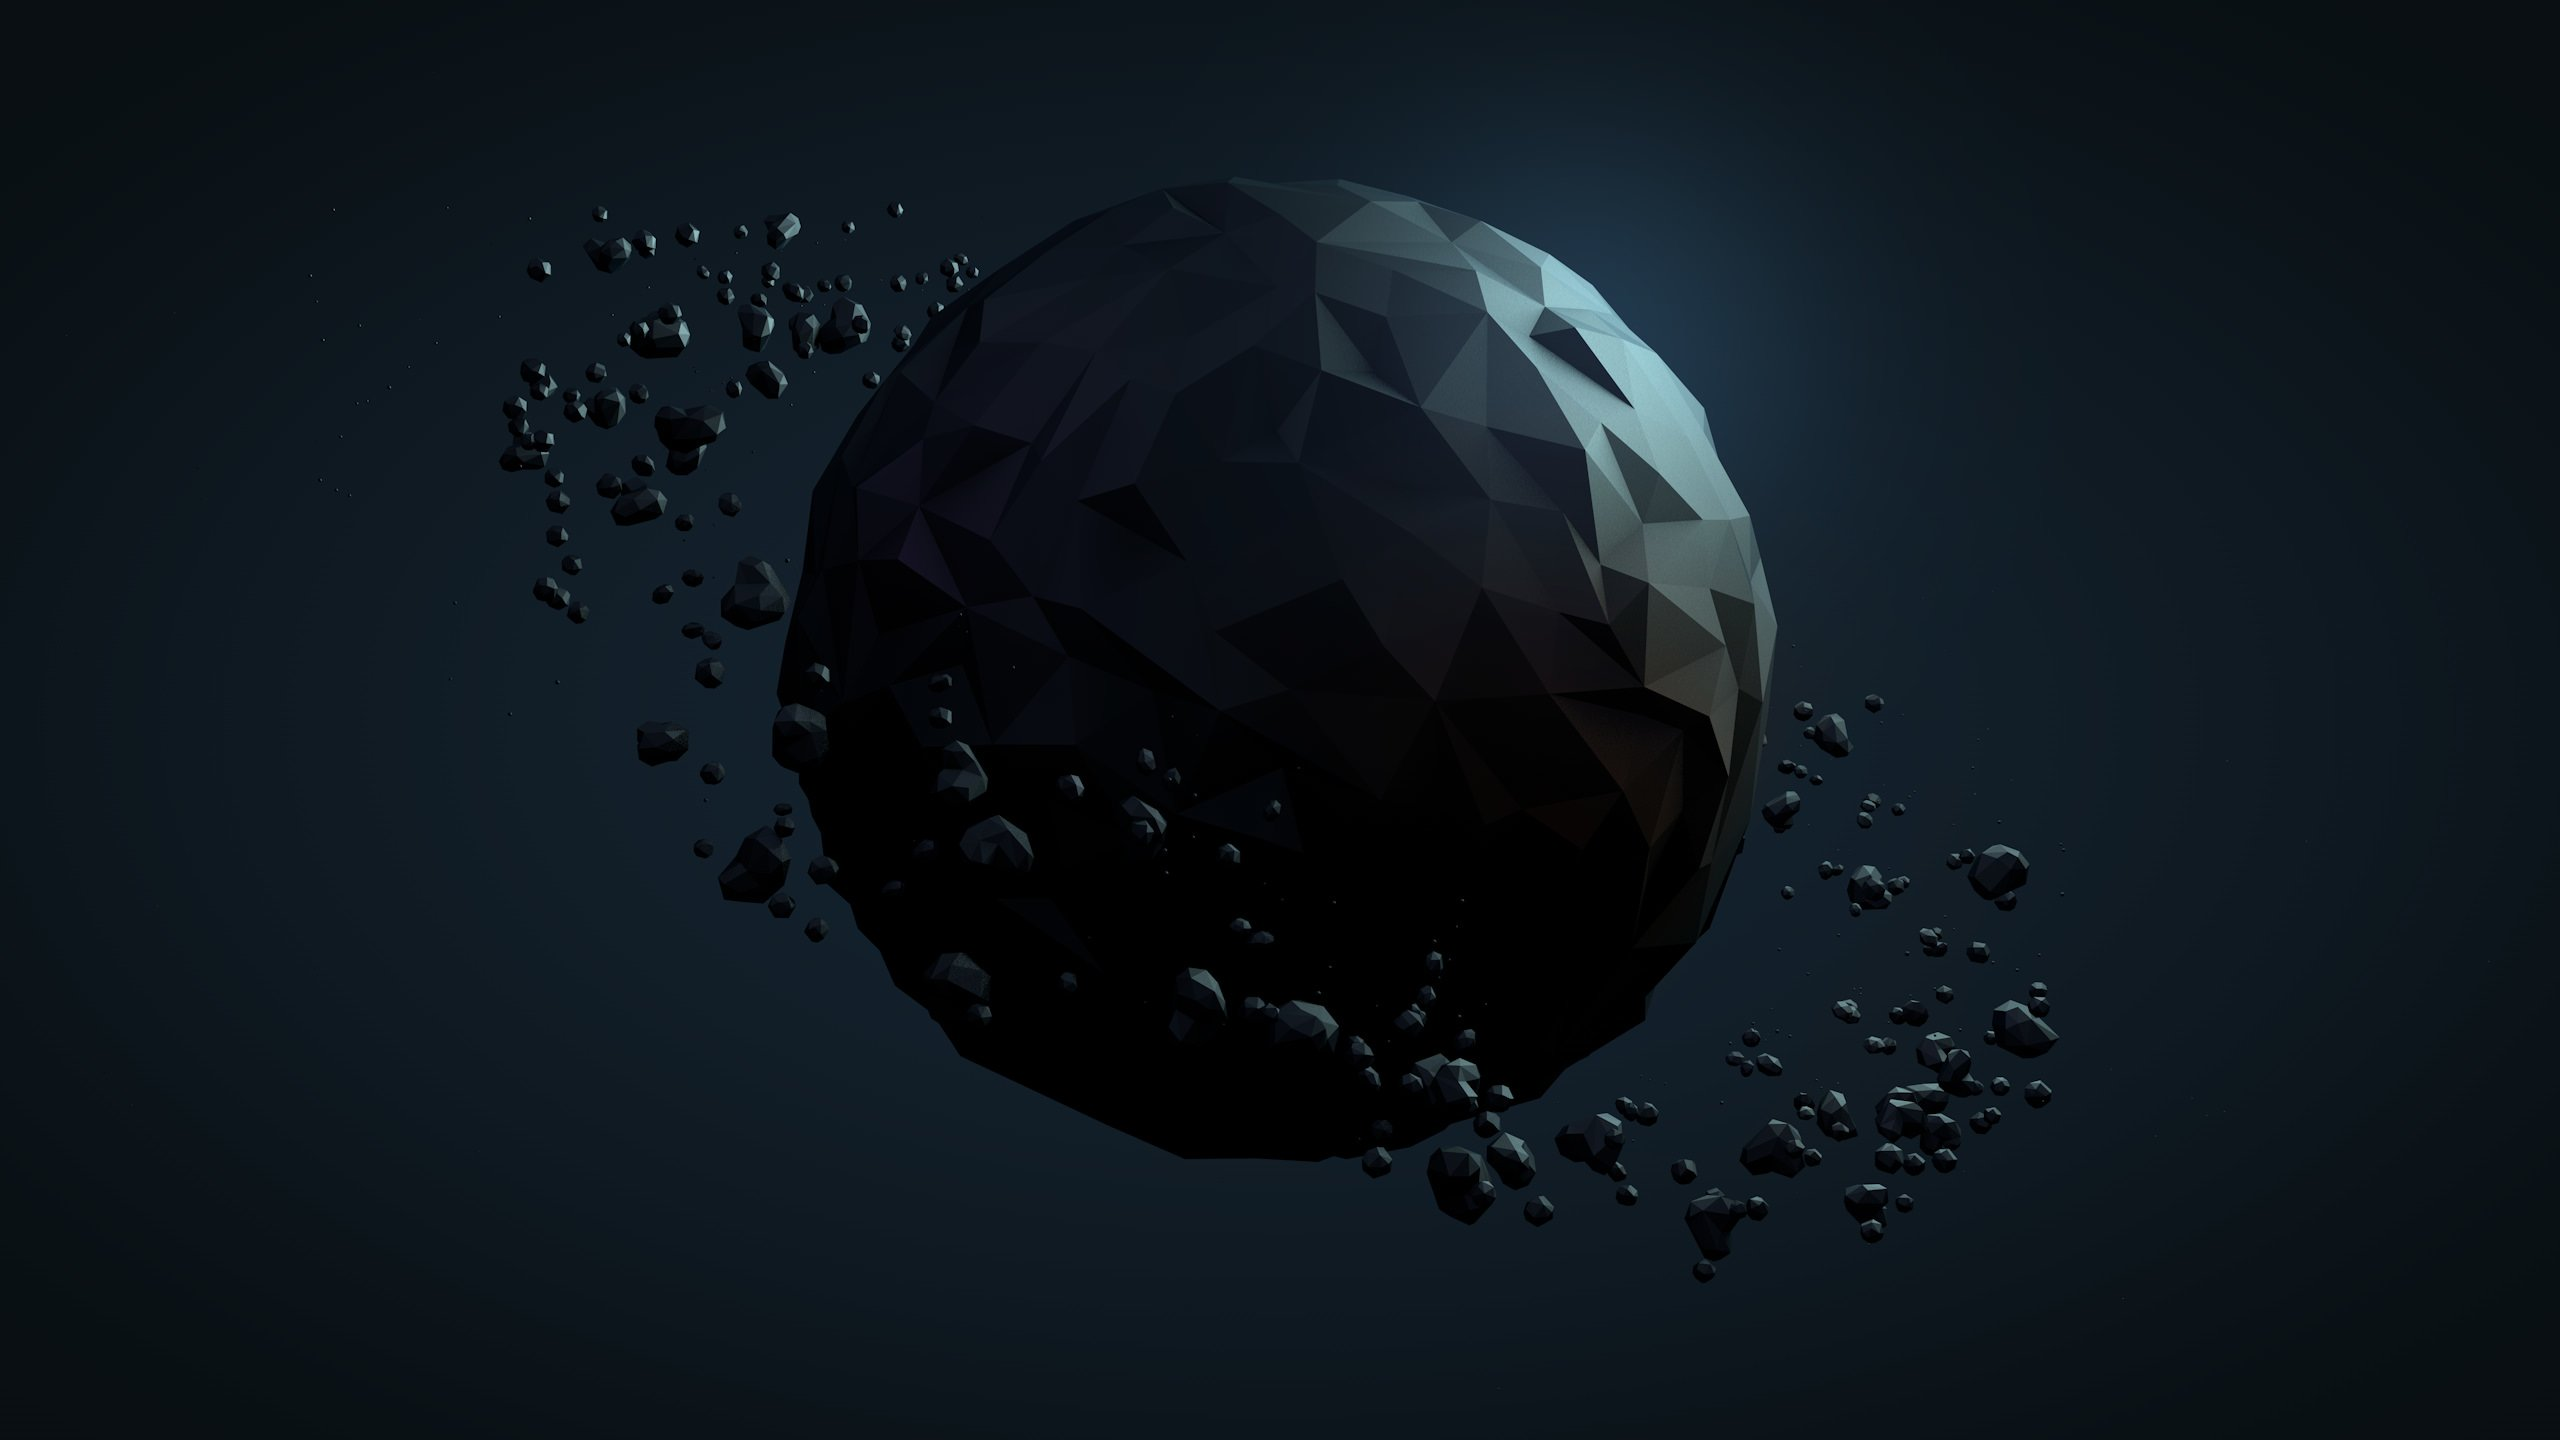 Low Poly Planet Wallpaper for Social Media YouTube Channel Art